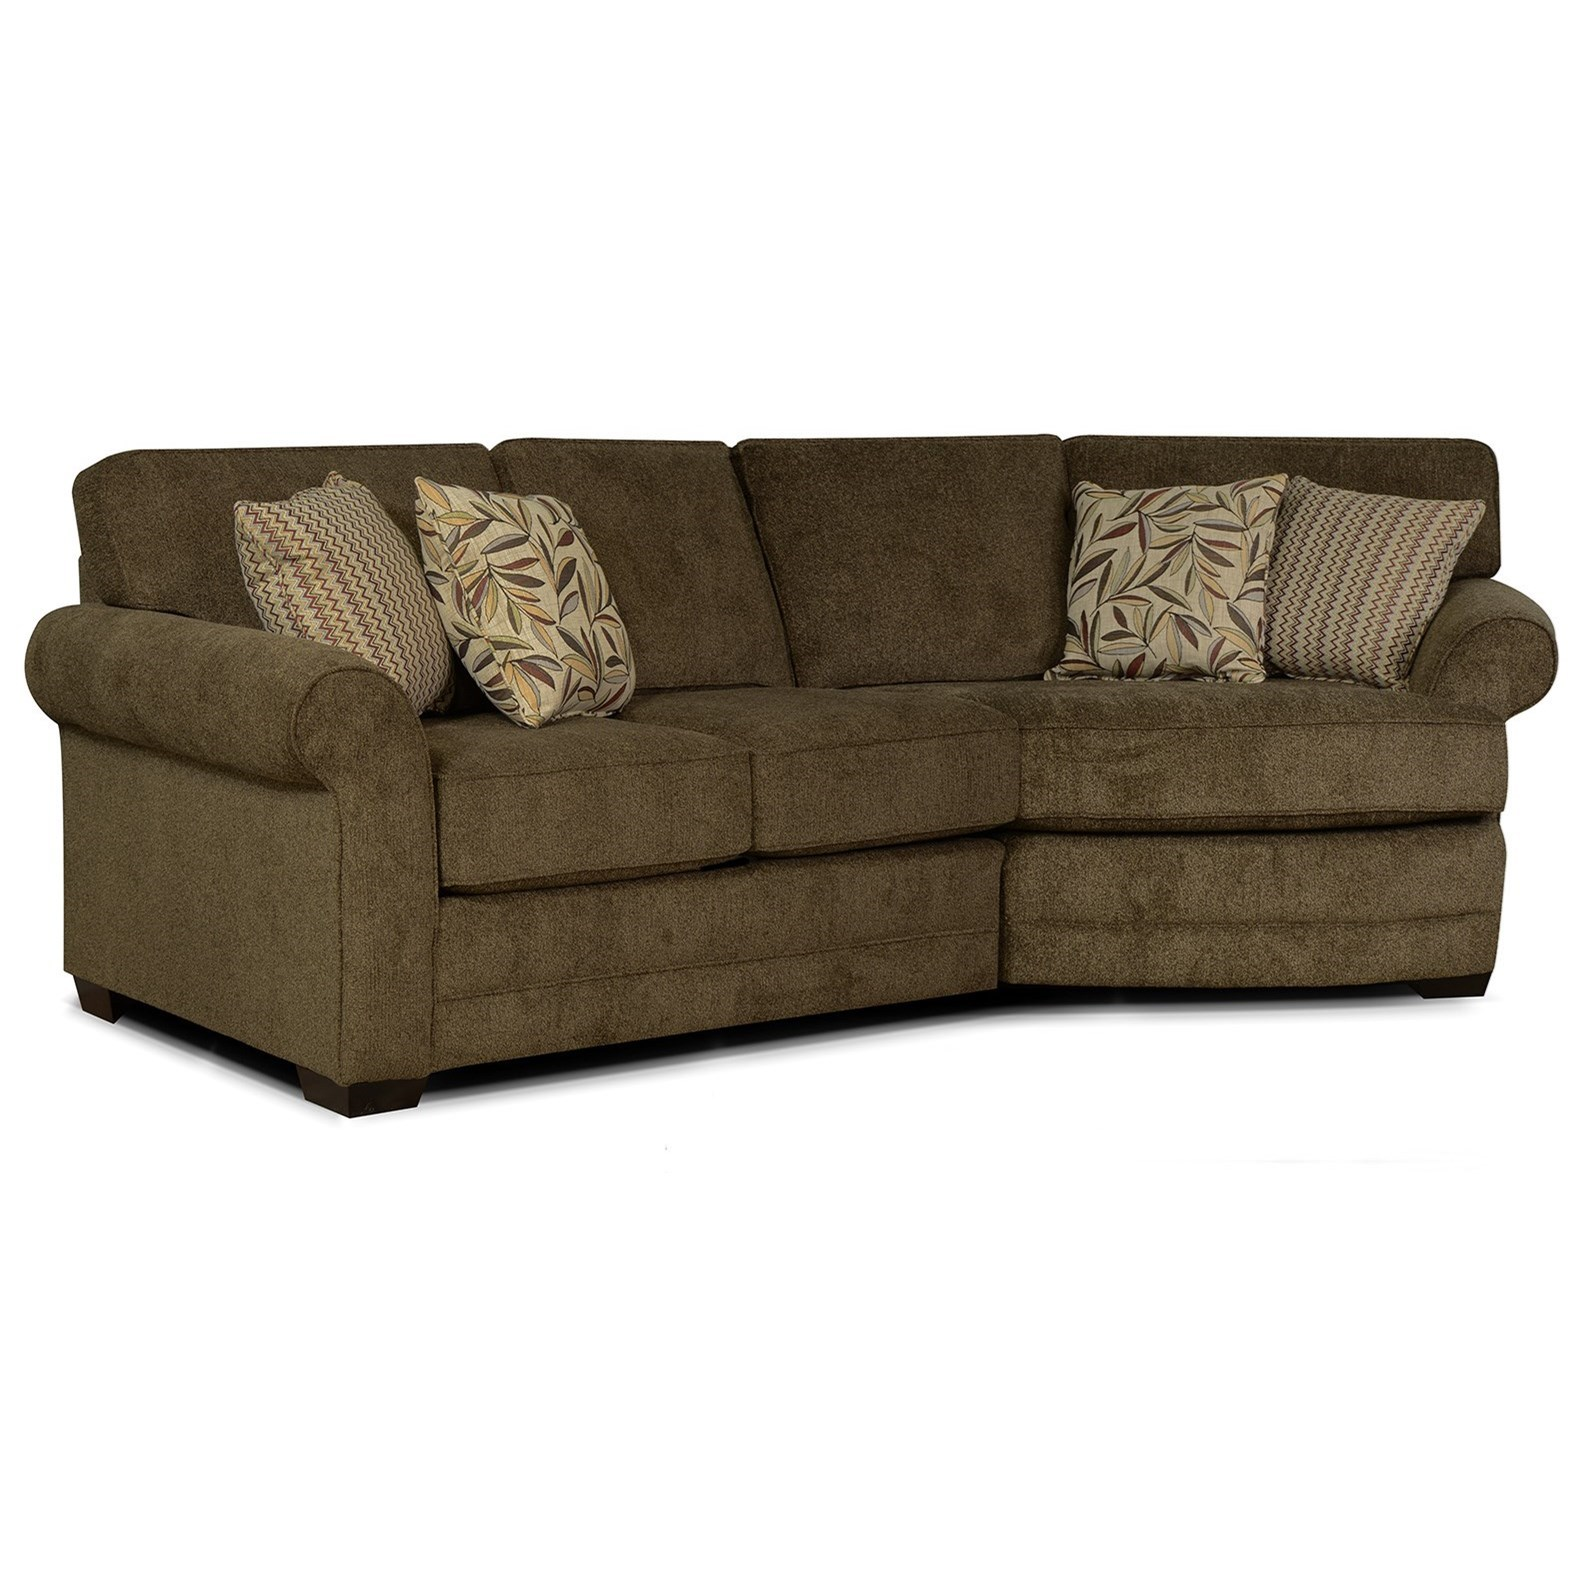 England Brantley 3 Seat Sectional Sofa with Cuddler | Dunk ...